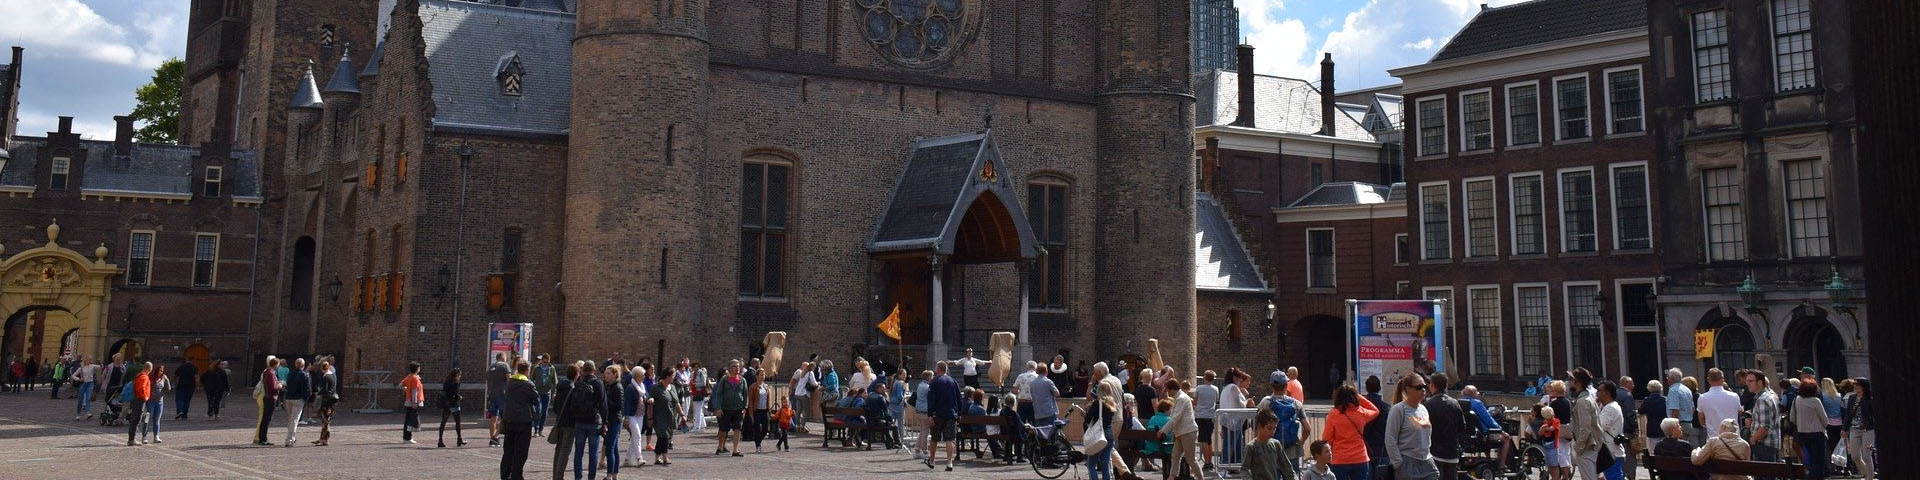 church at the market square in The Hague